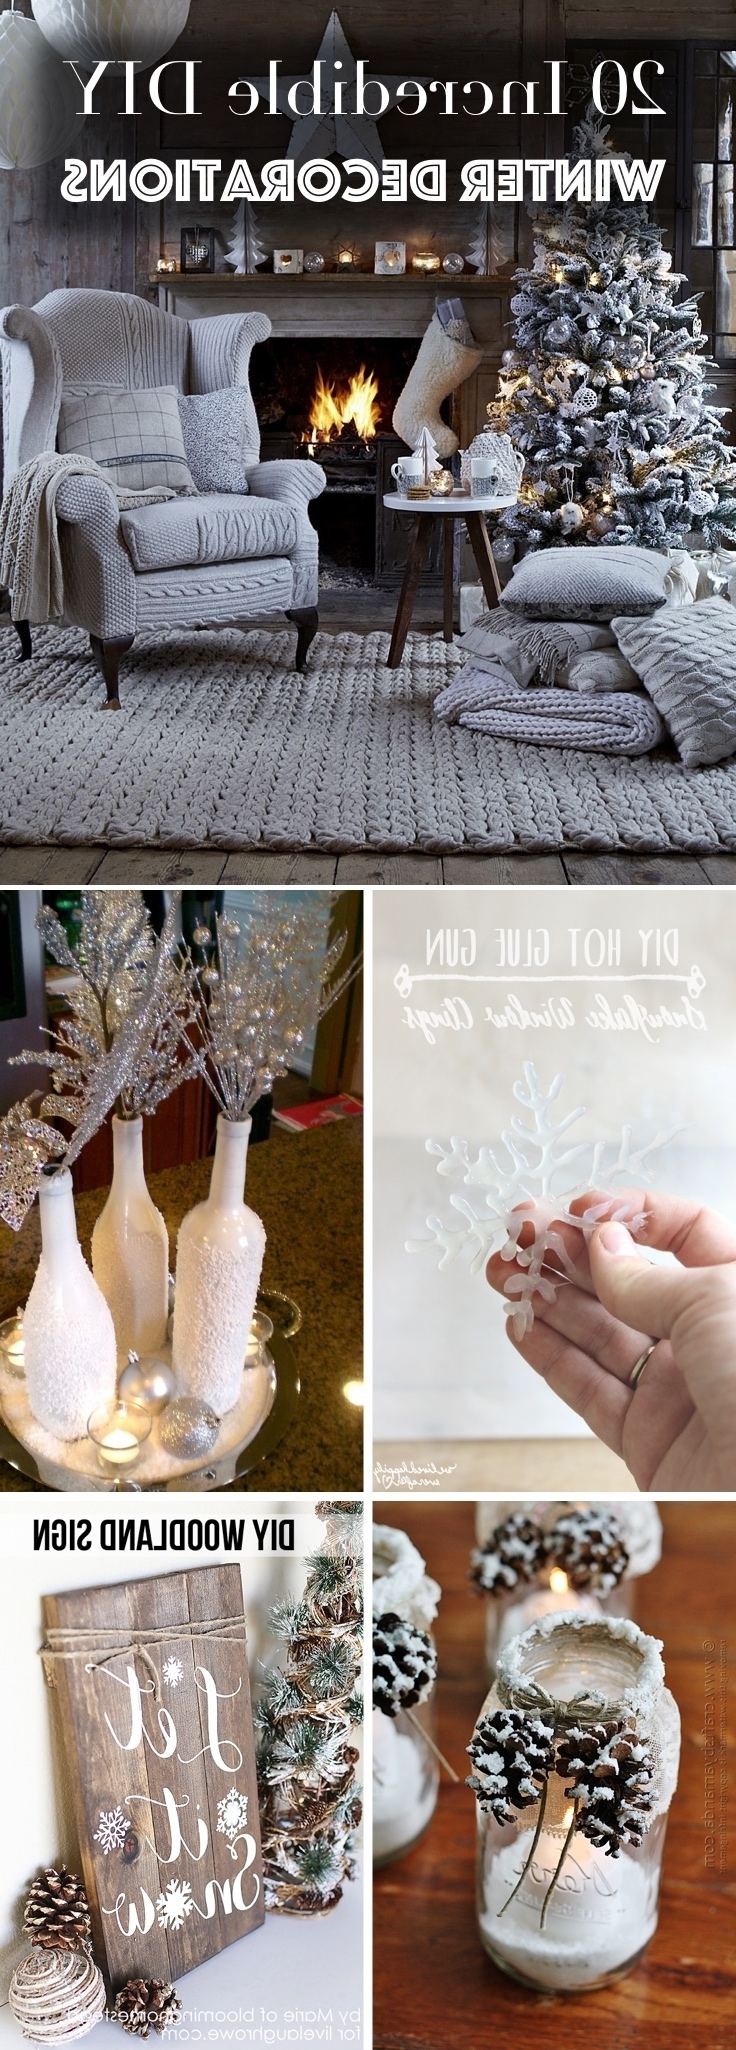 20 Incredible Diy Winter Decorations Transforming Your Home